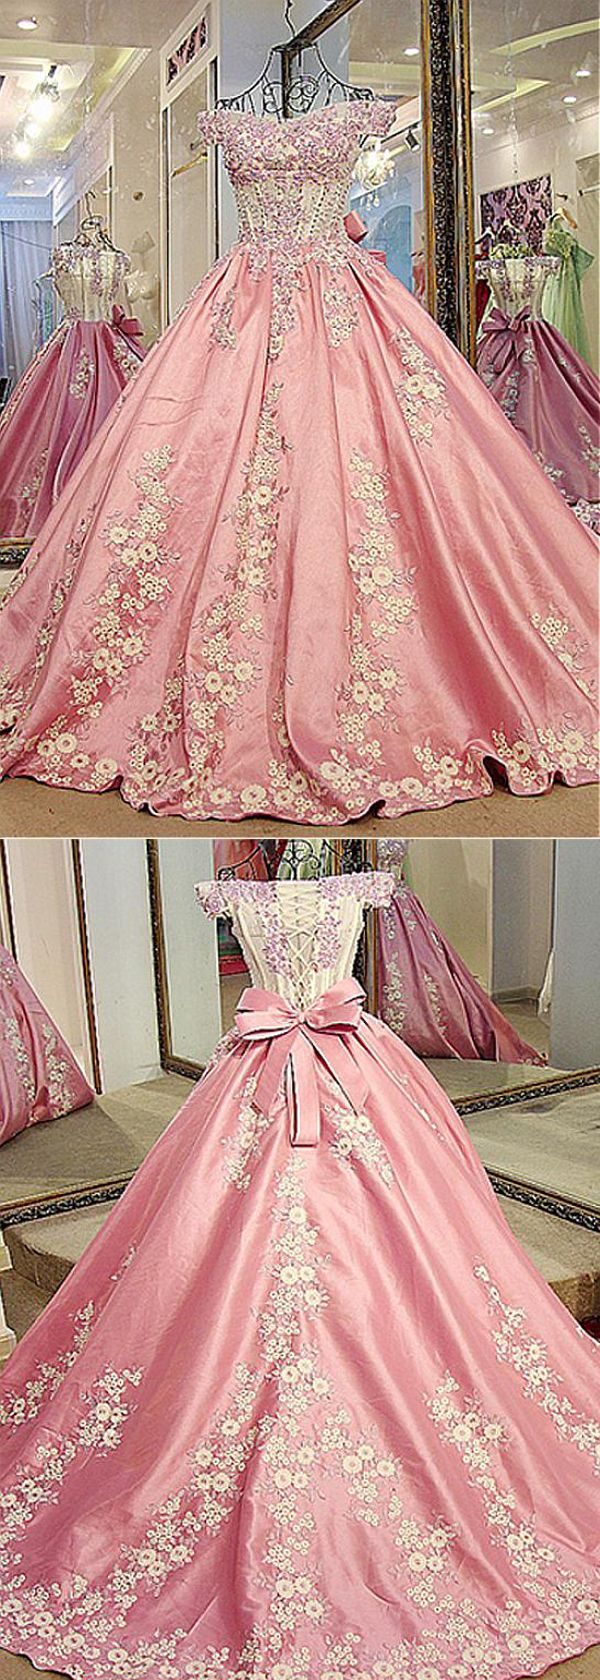 Attractive Tulle & Taffeta Off-the-shoulder Neckline Ball Gown Prom ...